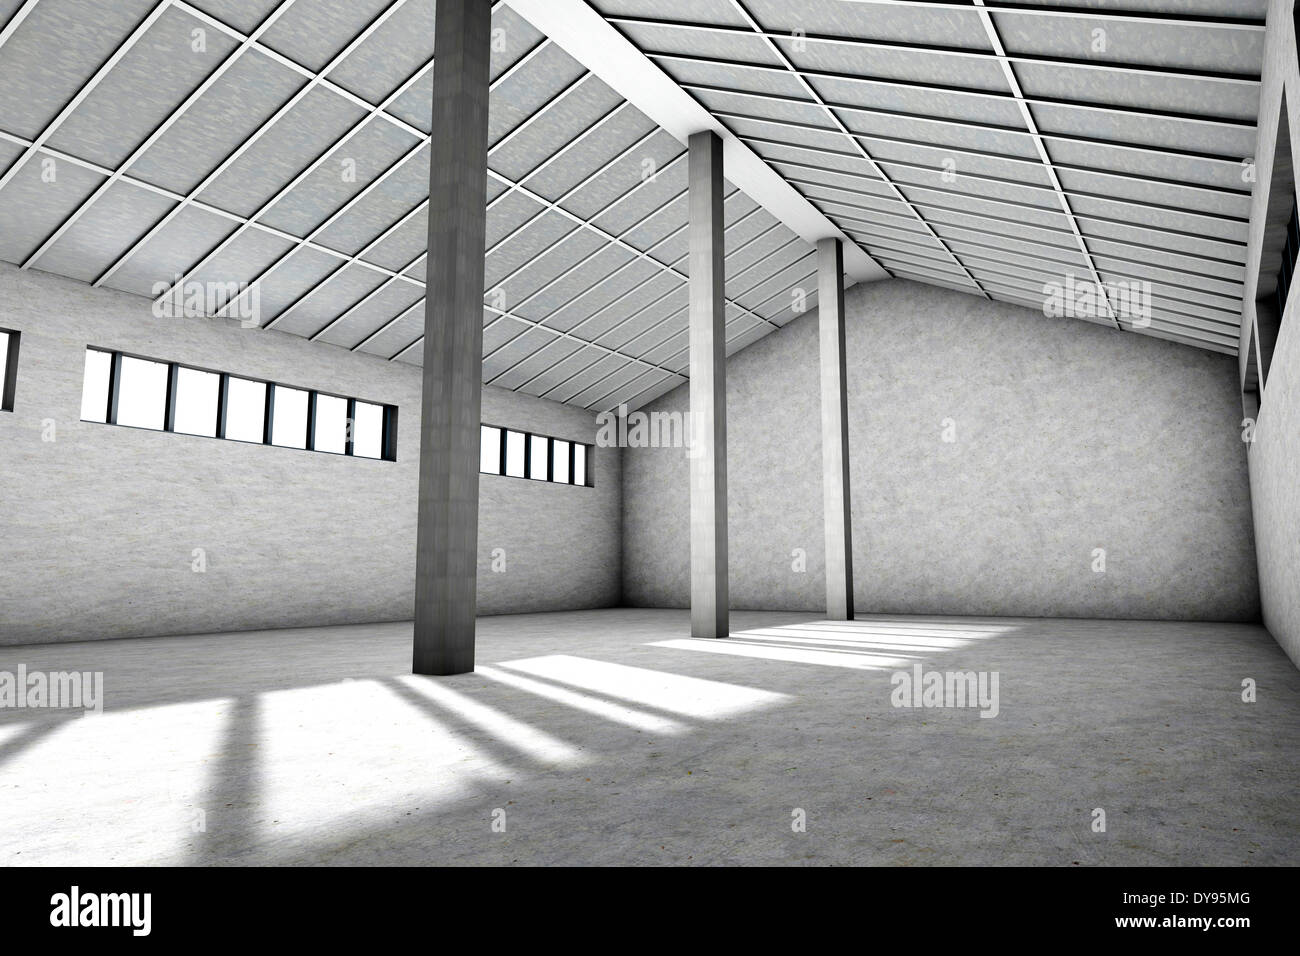 Architektur Rendering Lernen 3d Rendering Interior Empty Factory Stockfotos 3d Rendering